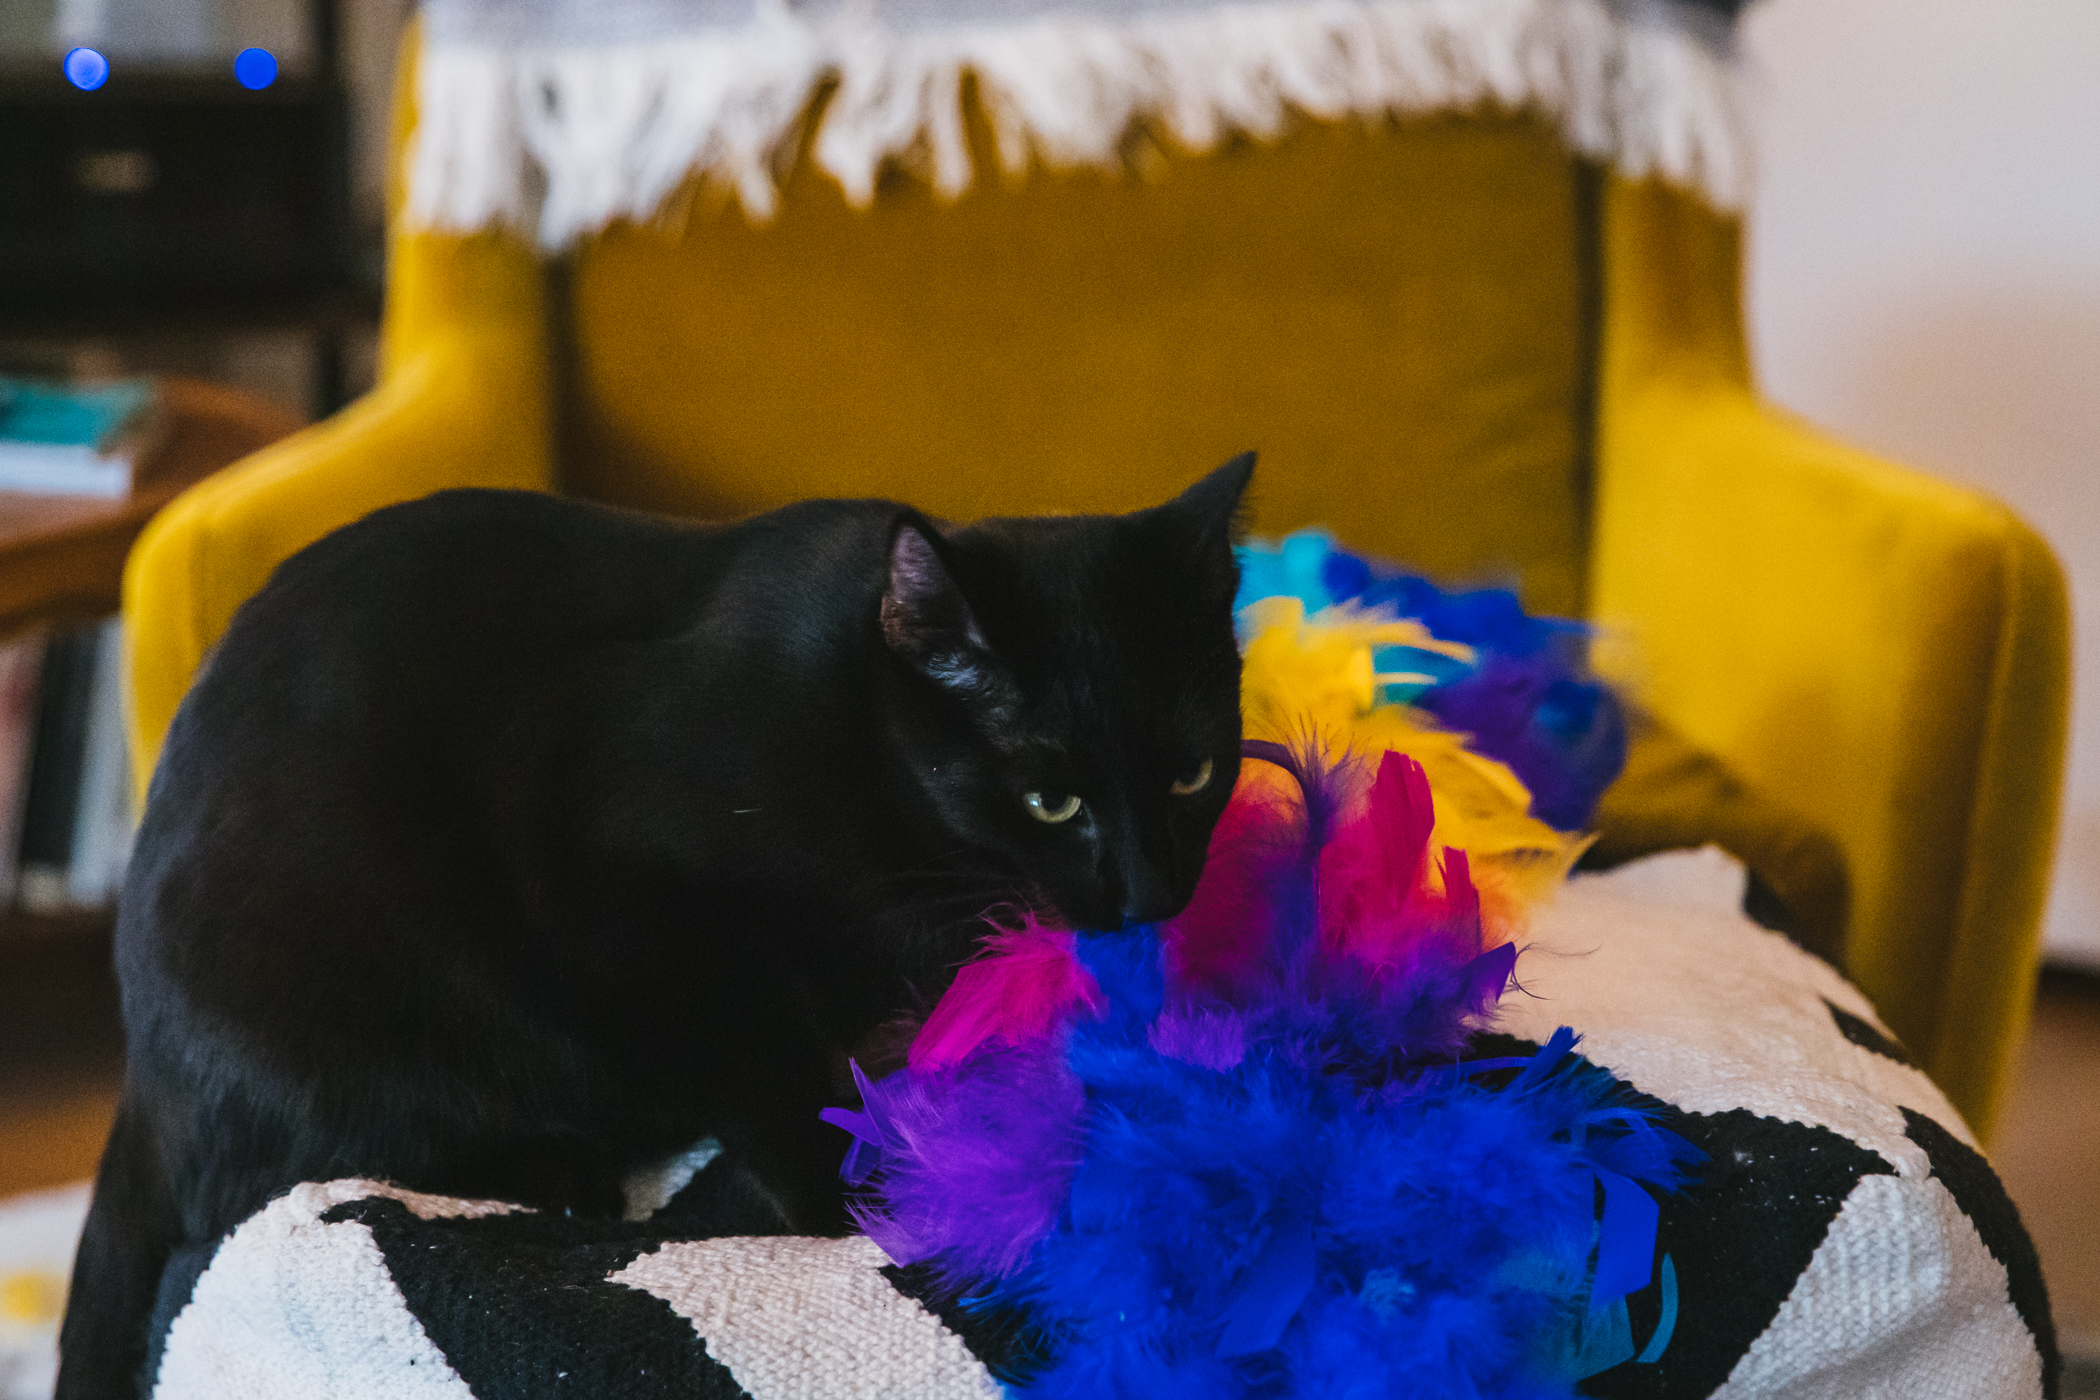 "A little panther of a kitten, Thor was adopted from{&nbsp;}<a  href=""https://www.motleyzooanimalrescue.org/"" target=""_blank"" title=""https://www.motleyzooanimalrescue.org/"">Motley Zoo Animal Rescue</a>{&nbsp;}on the eve of quarantine. Determined to break your heart, Thor and his brother Bruce love to wrestle and spoon and climb to the top of everything. His mom SWEARS he's part spider monkey, awaiting tests to confirm. On any given day, you'll find the 10-month-old napping on mom's desk, insisting on tummy rubs, or playing fetch with his favorite toys. He loves all things edible and hates rules. Do not look directly into his big golden eyes, as you will for sure melt.{&nbsp;}<a  href=""http://seattlerefined.com/ruffined"" target=""_blank"" title=""http://seattlerefined.com/ruffined"">The RUFFined Spotlight{&nbsp;}</a>is a weekly profile of local pets living and loving life in the PNW. If you or someone you know has a pet you'd like featured, email us at{&nbsp;}<a  href=""mailto:hello@seattlerefined.com"" target=""_blank"" title=""mailto:hello@seattlerefined.com"">hello@seattlerefined.com</a>, and your furbaby could be the next spotlighted! (Image: Sunita Martini / Seattle Refined)"